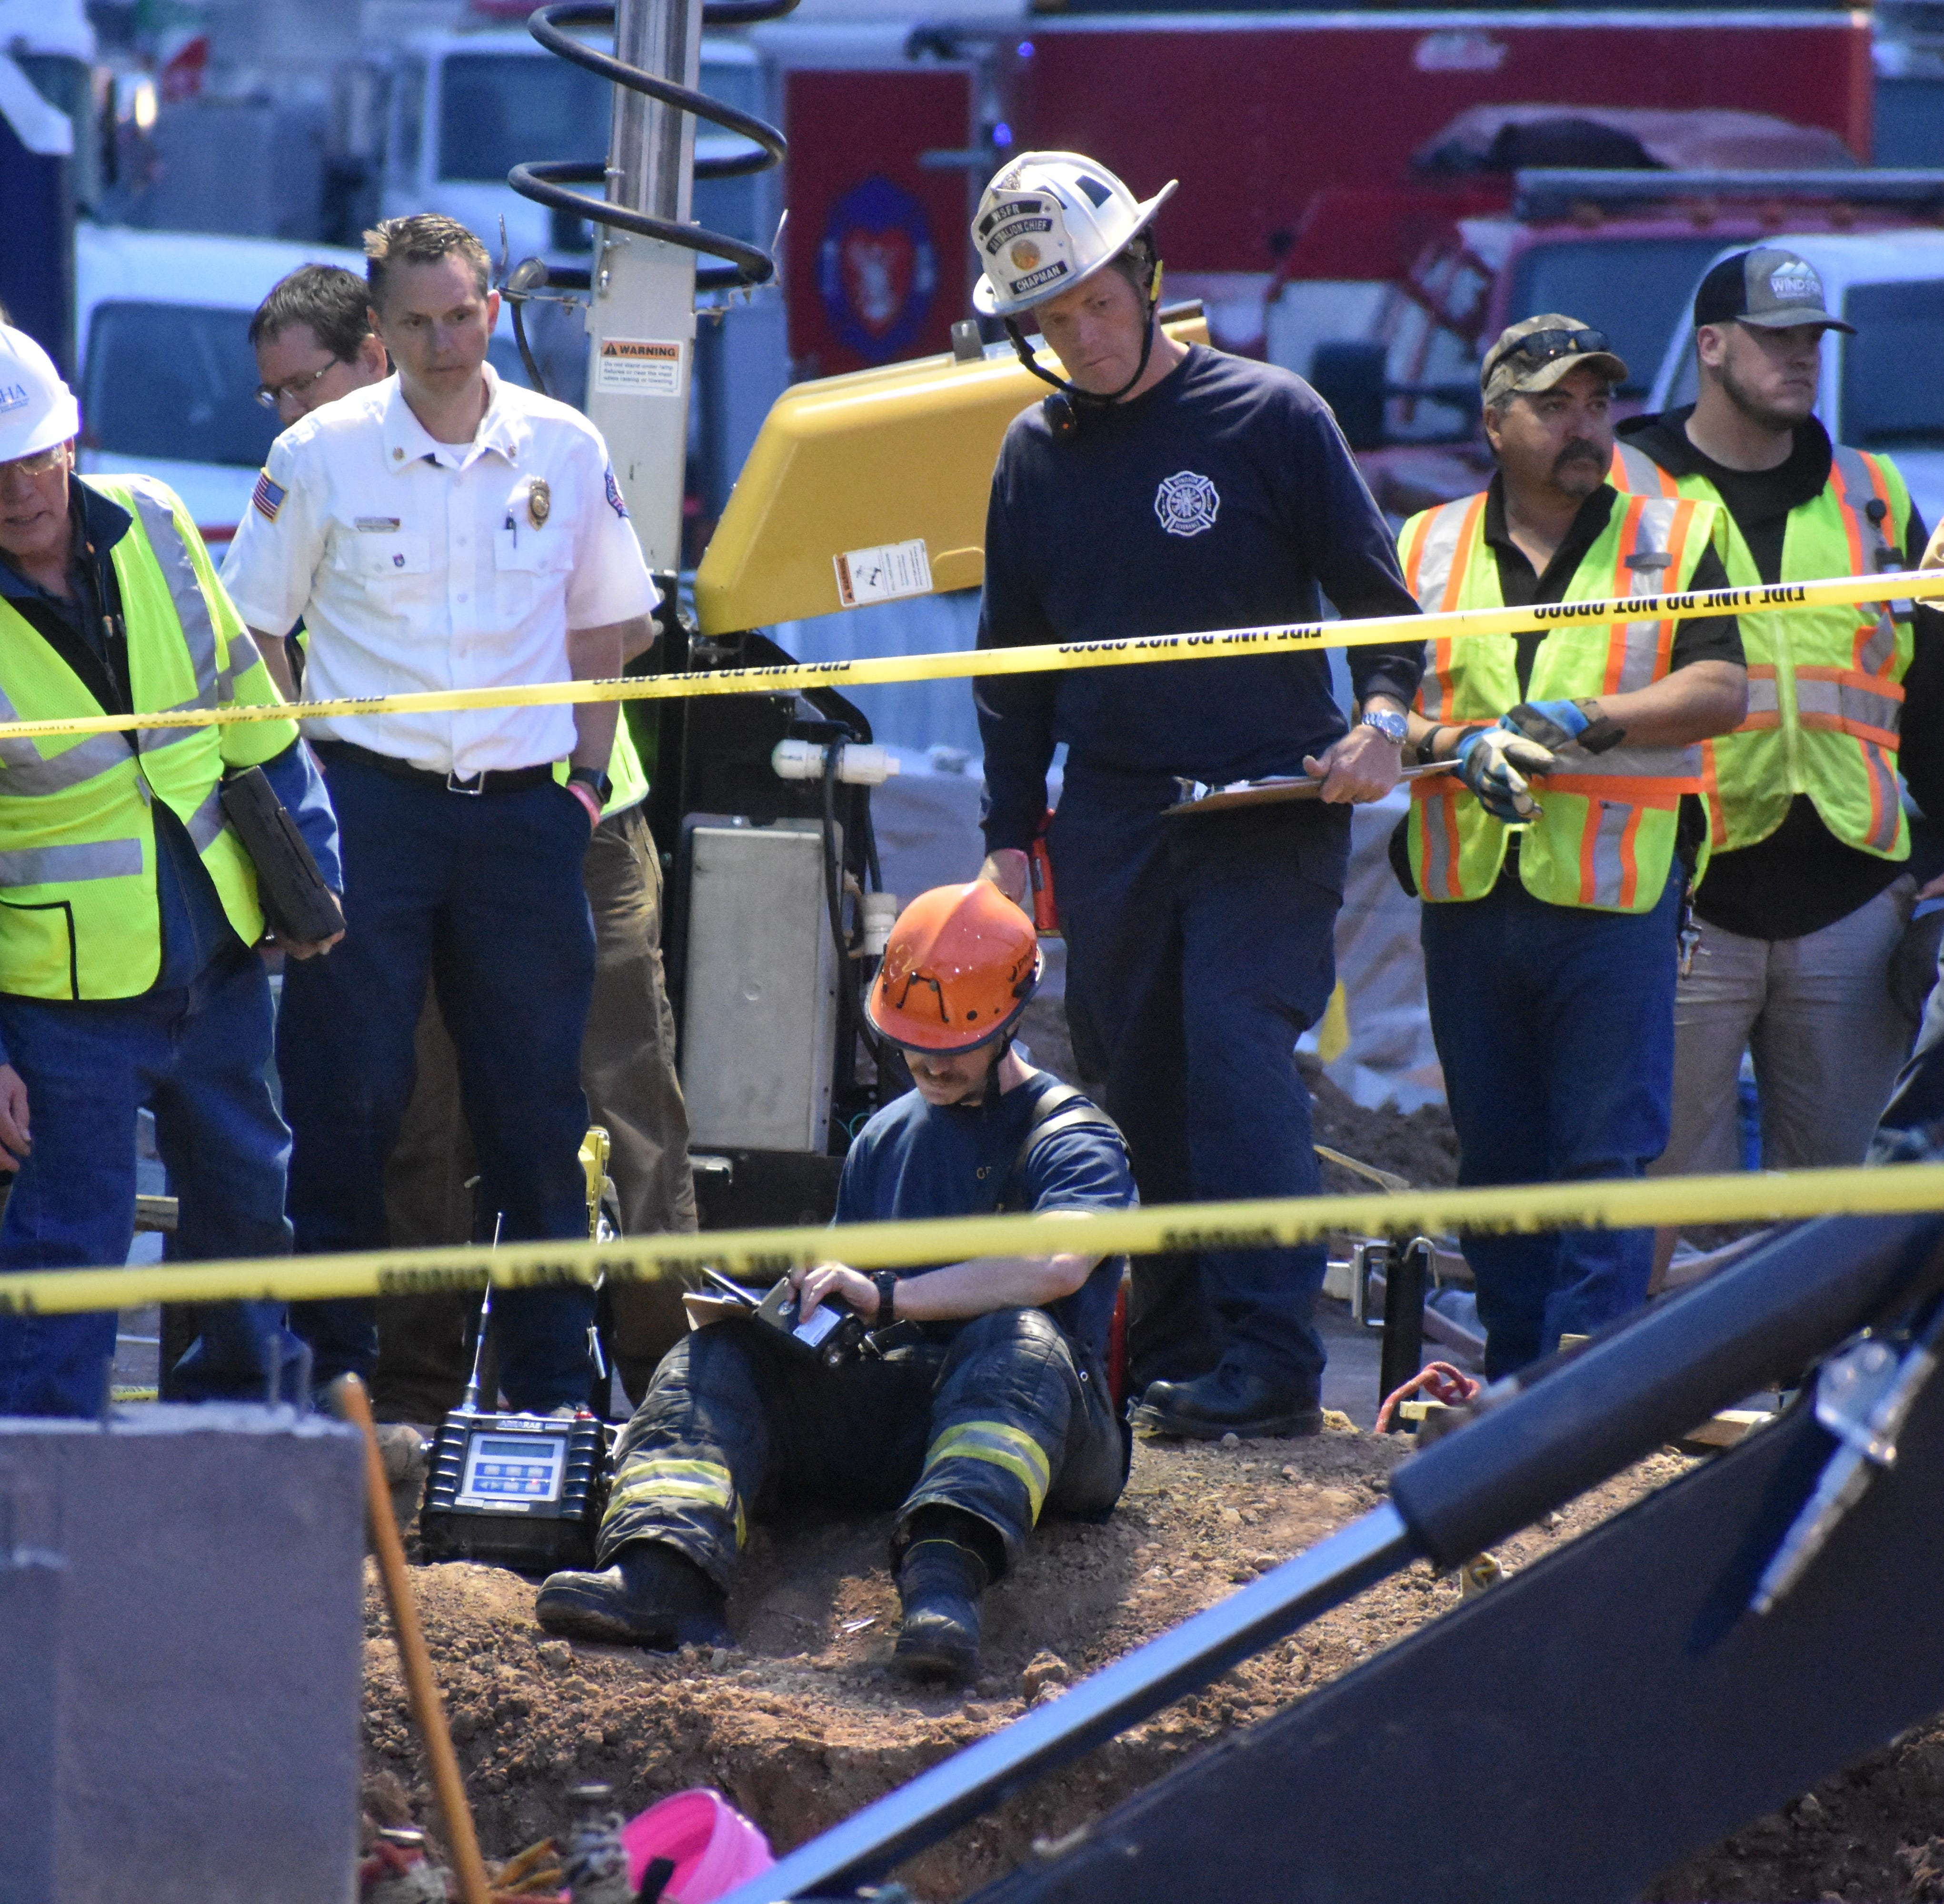 Windsor fire chief on fatal trench accident: 'This one will come to mind for all of us'